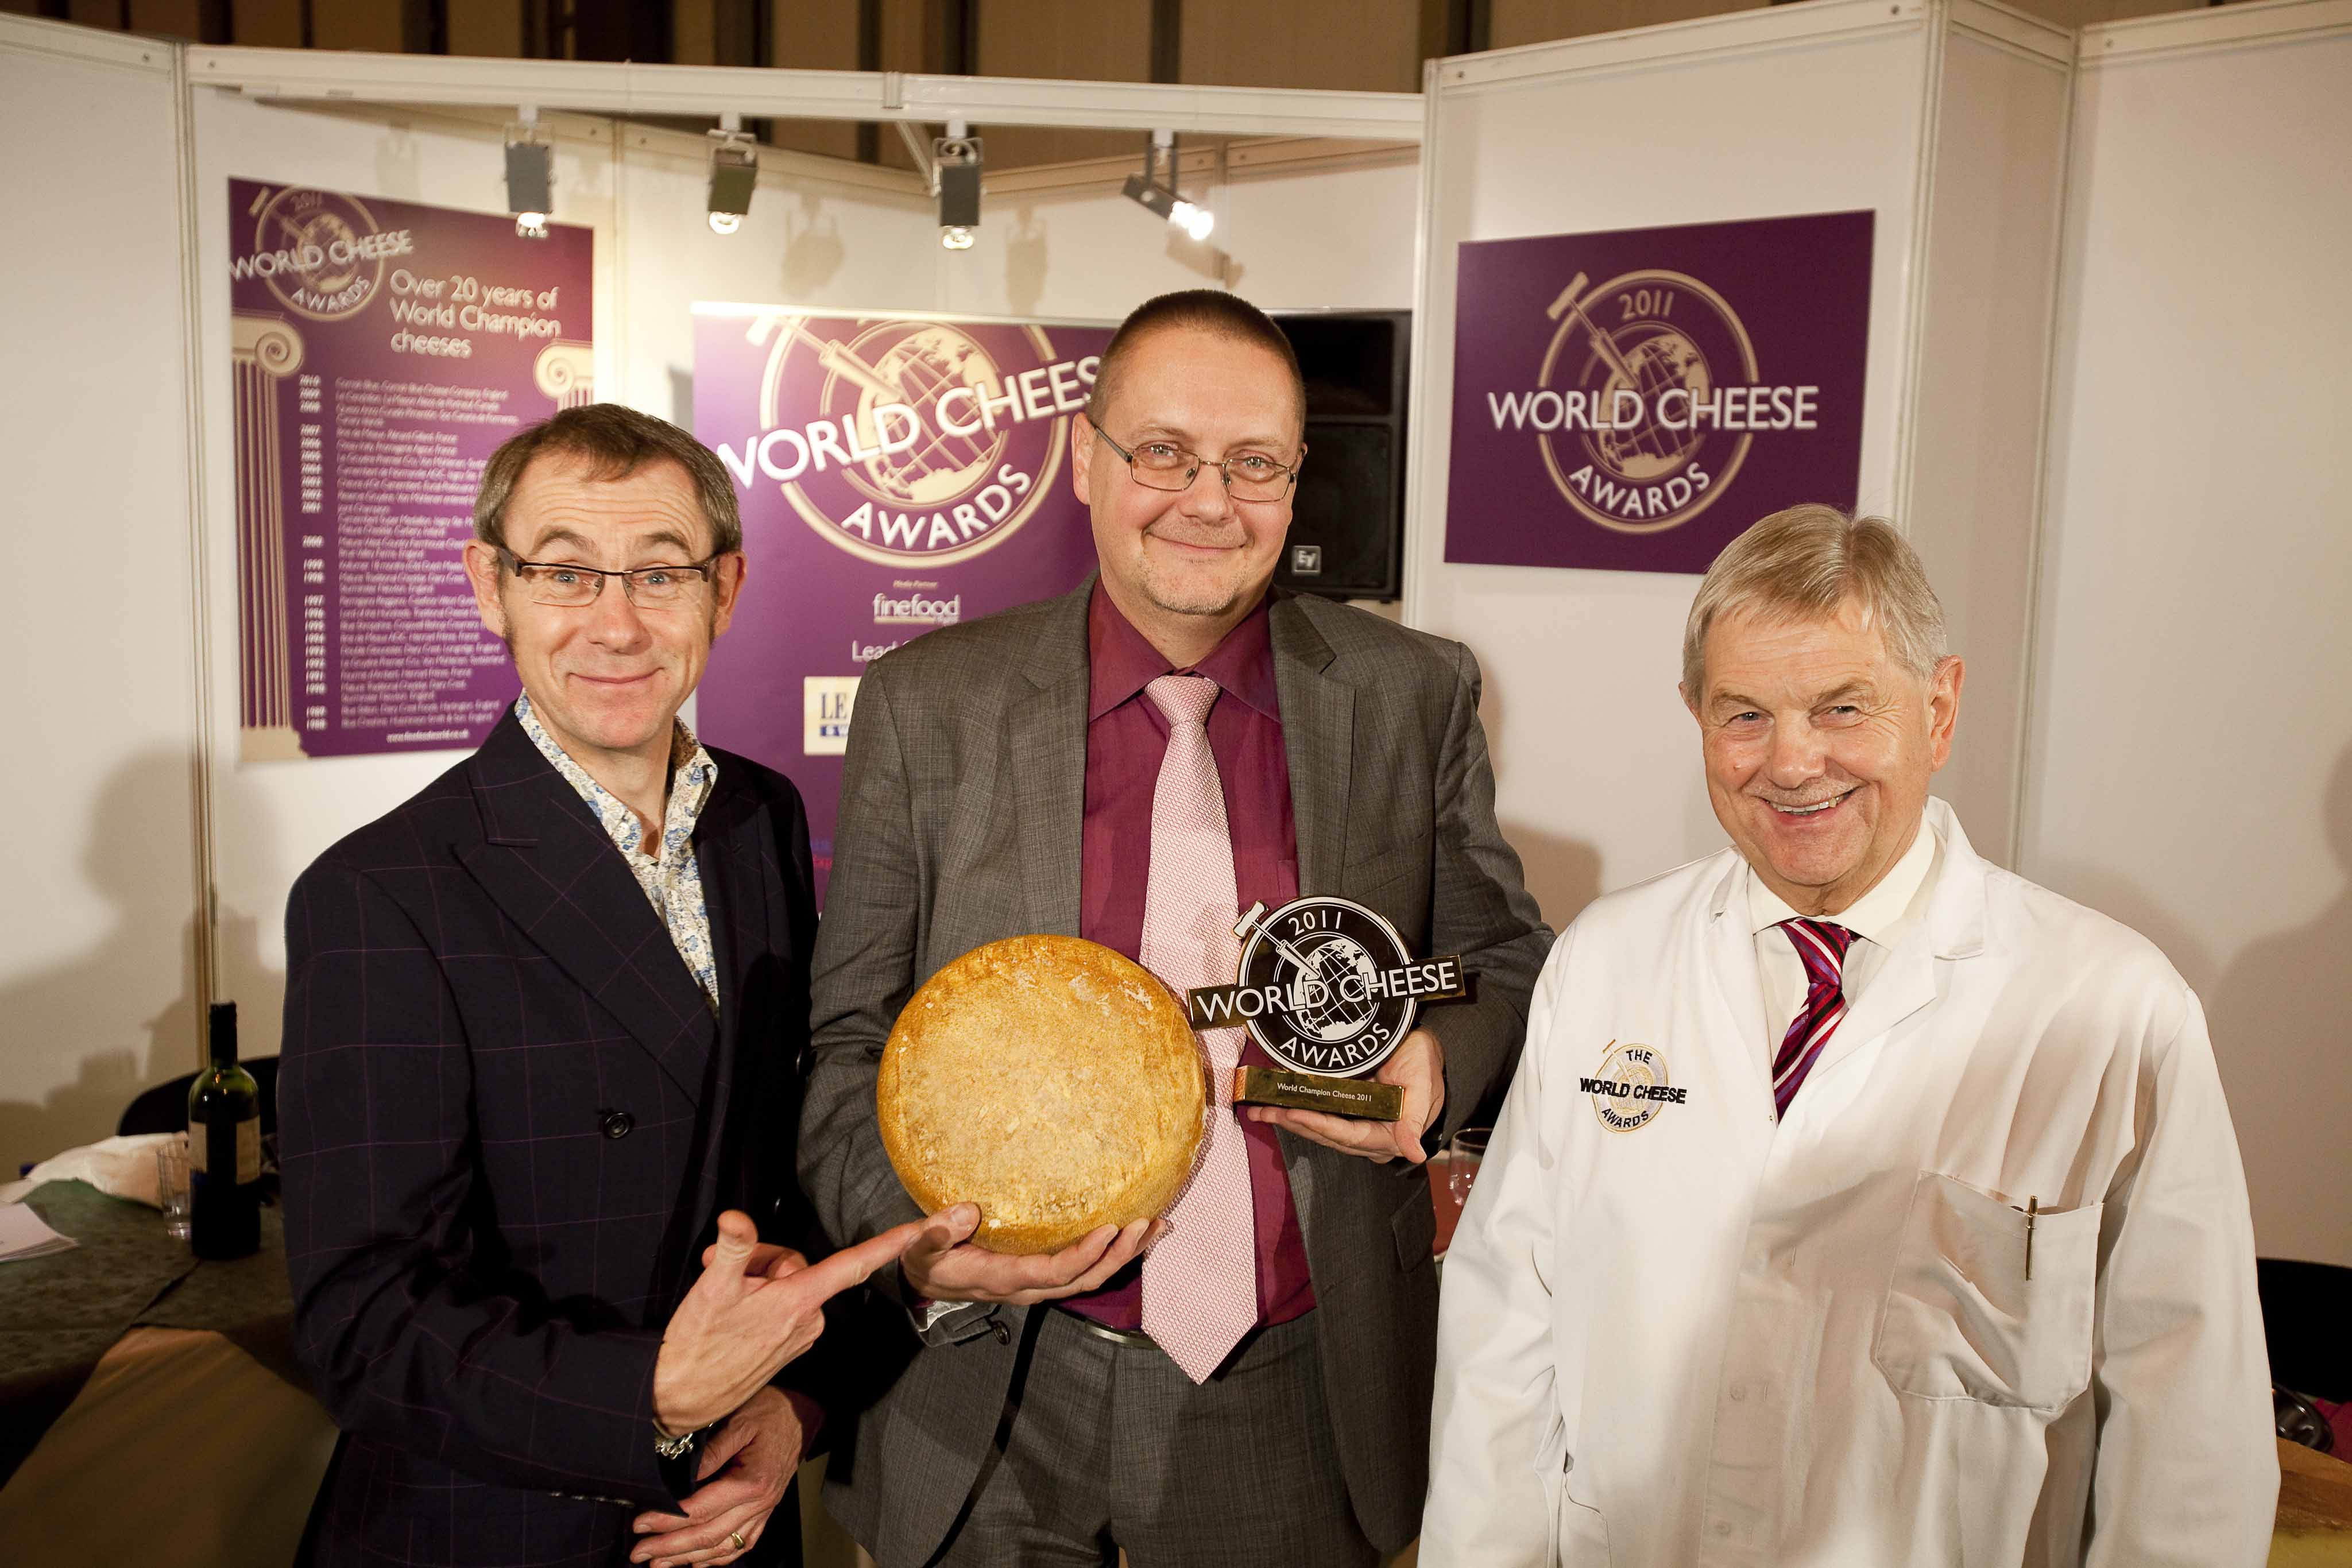 Nigel Barden, Frédéric Gayral with the winning cheese and Bob Farrand